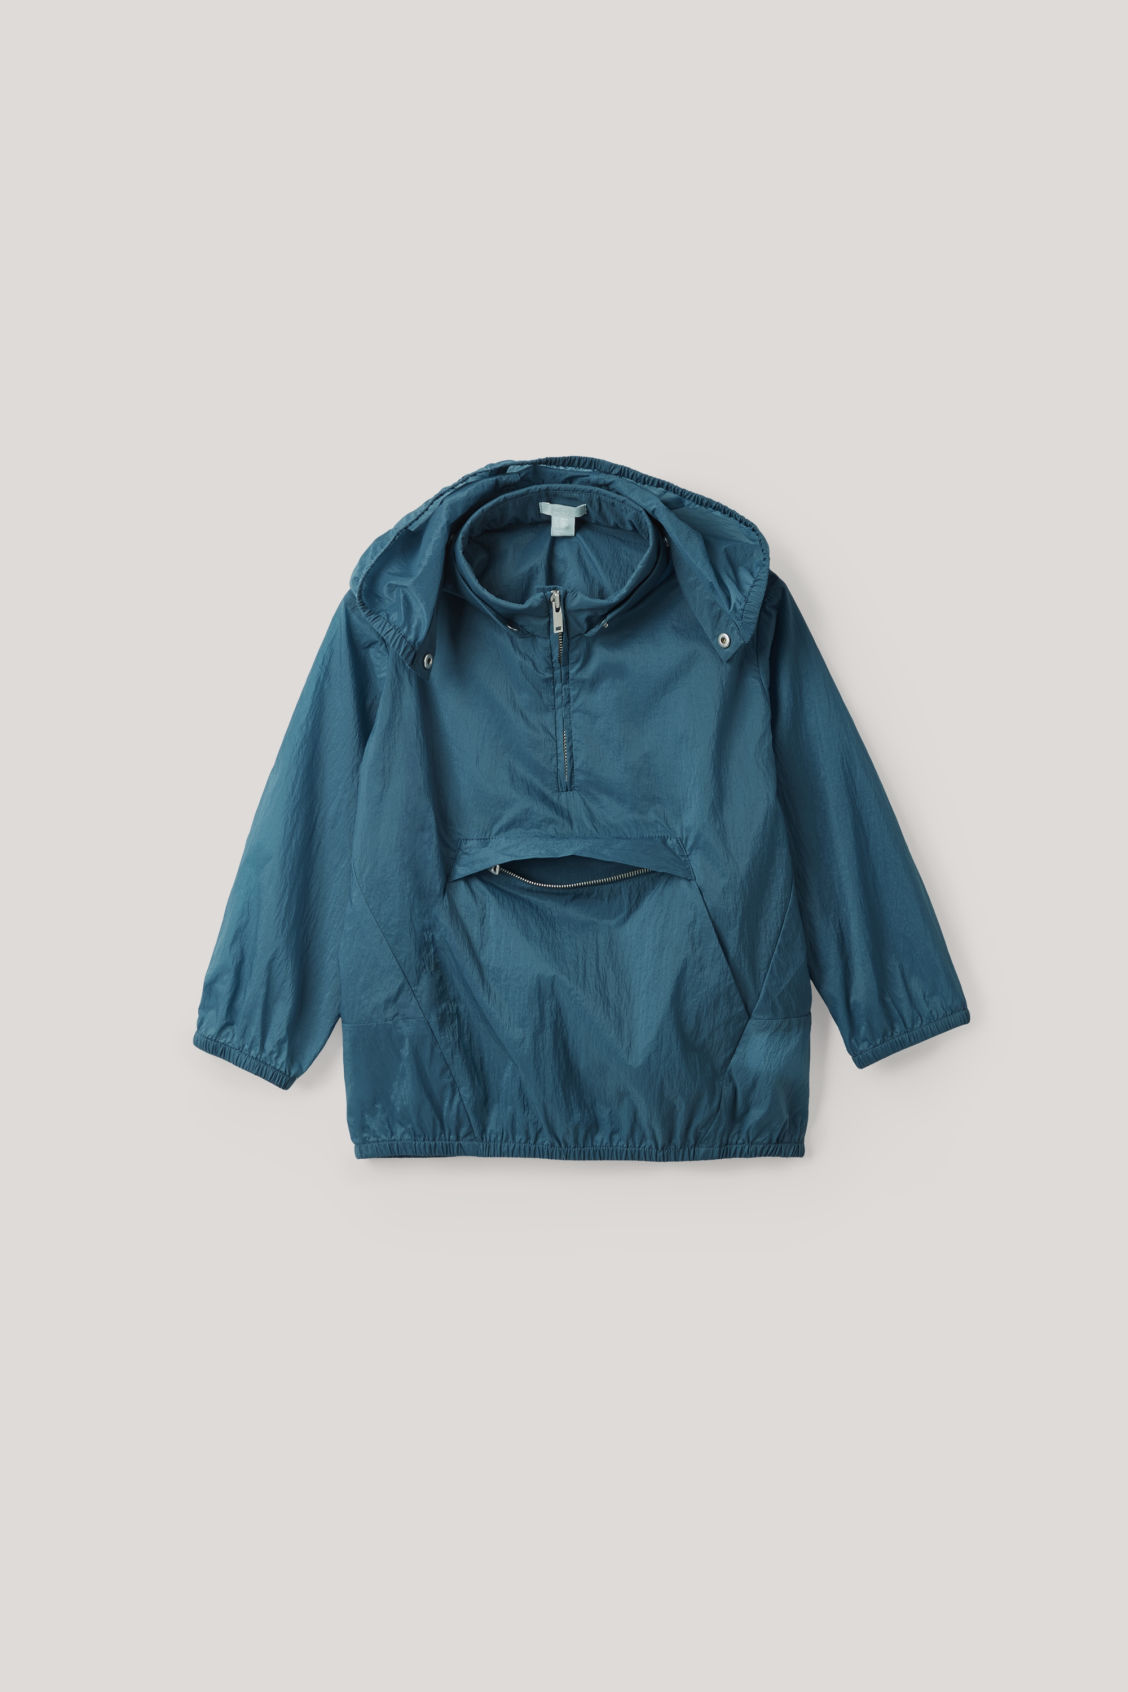 Detailed image of Cos packable lightweight jacket  in blue